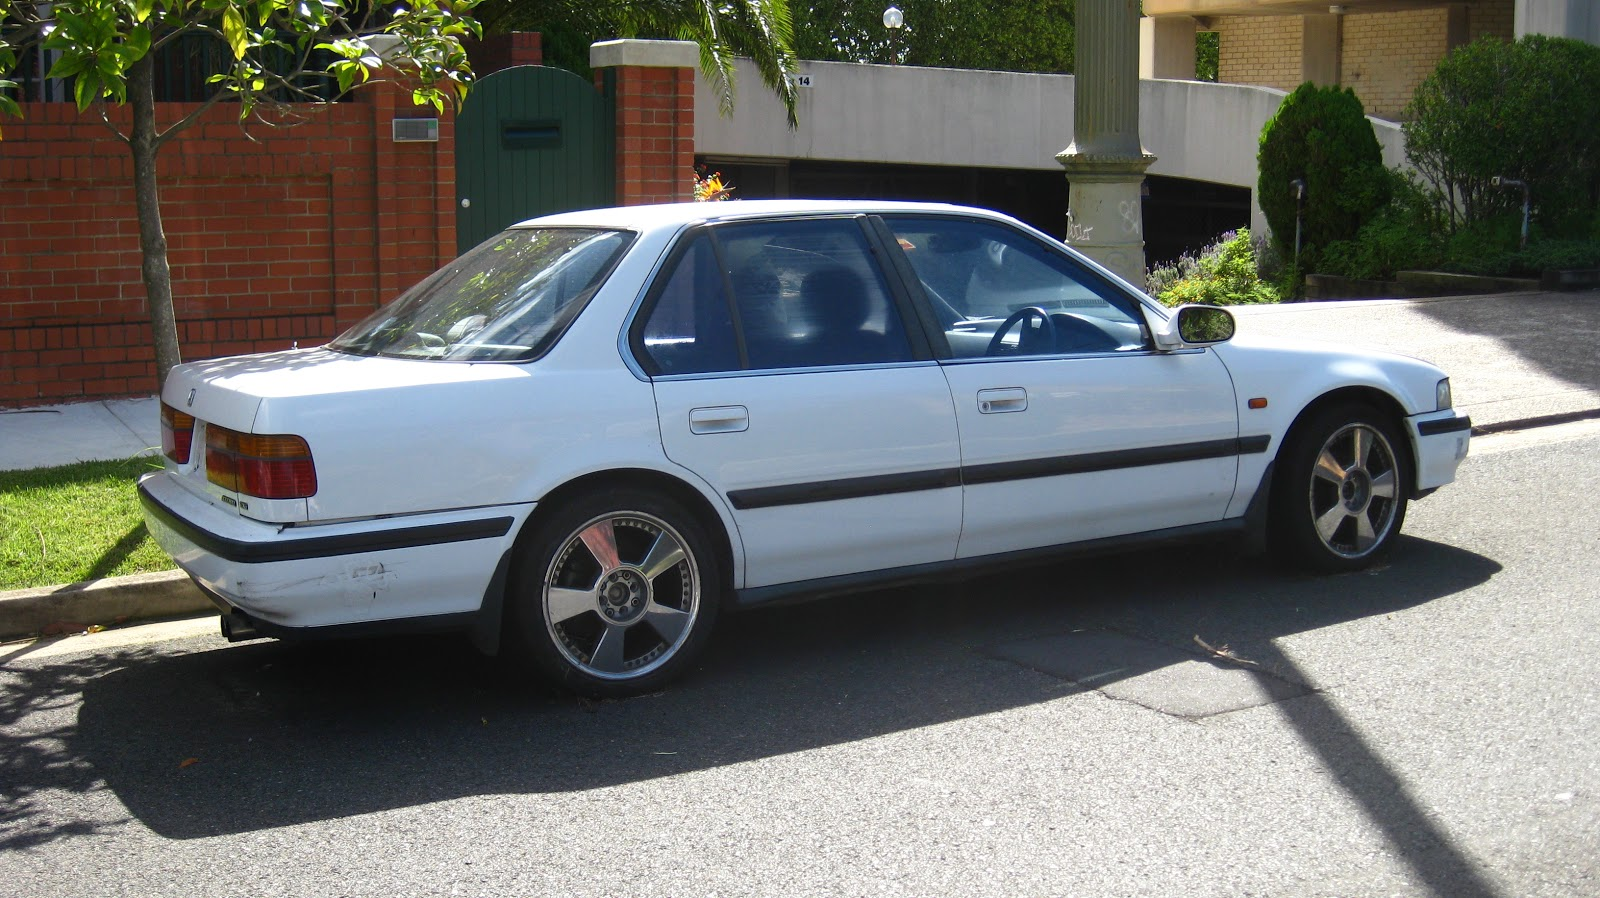 Aussie old parked cars 1991 honda accord exi sedan for Honda accord old model